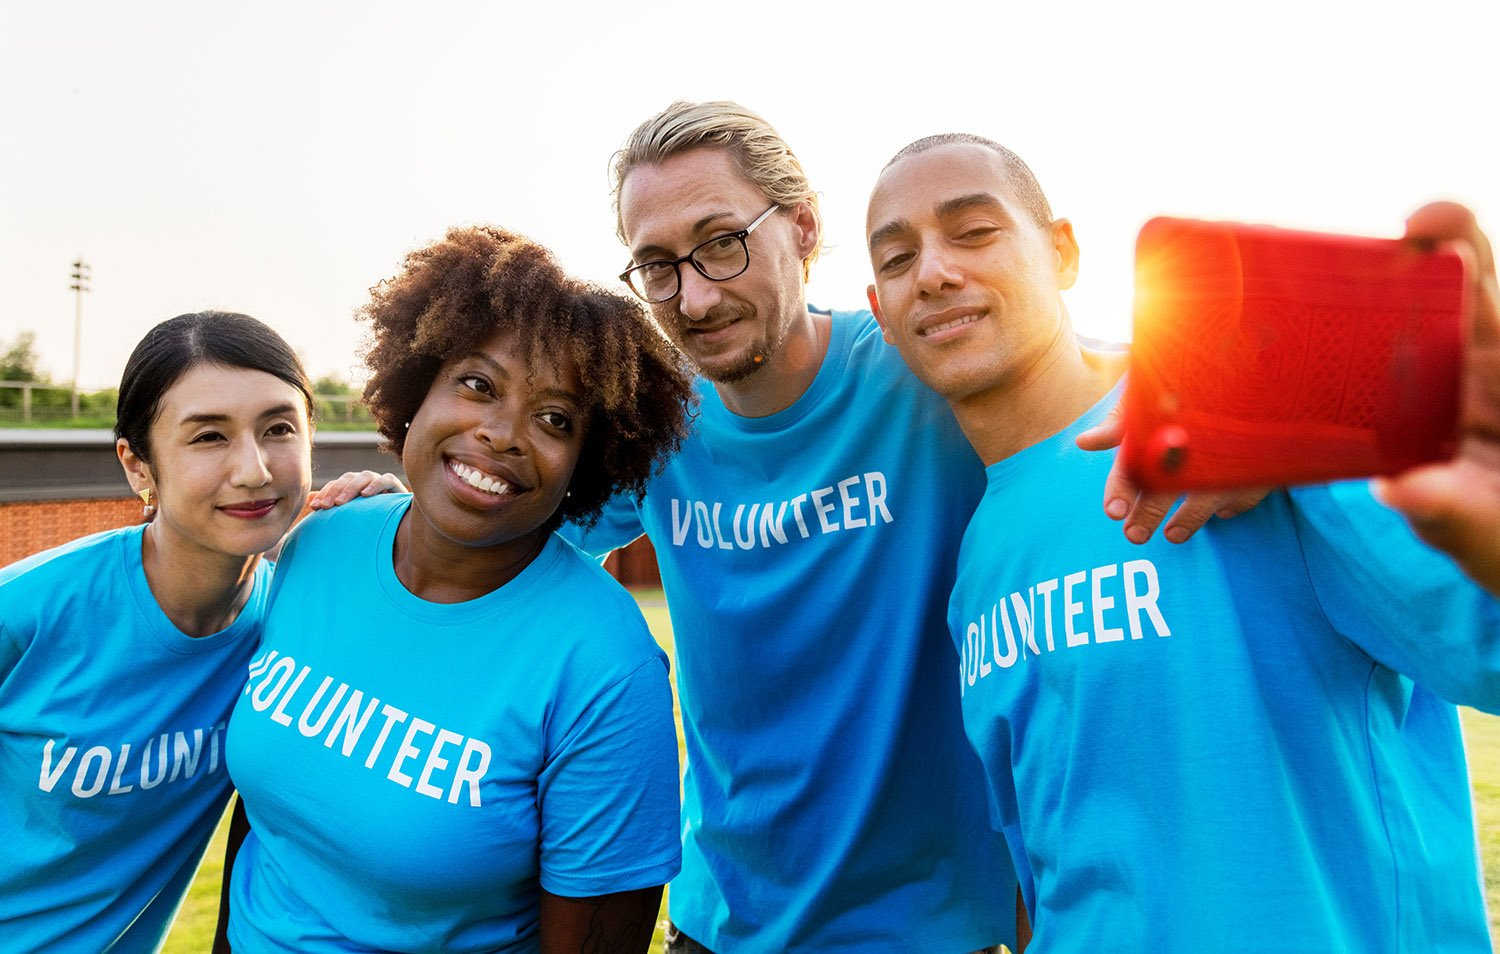 Volunteering can help establish a career